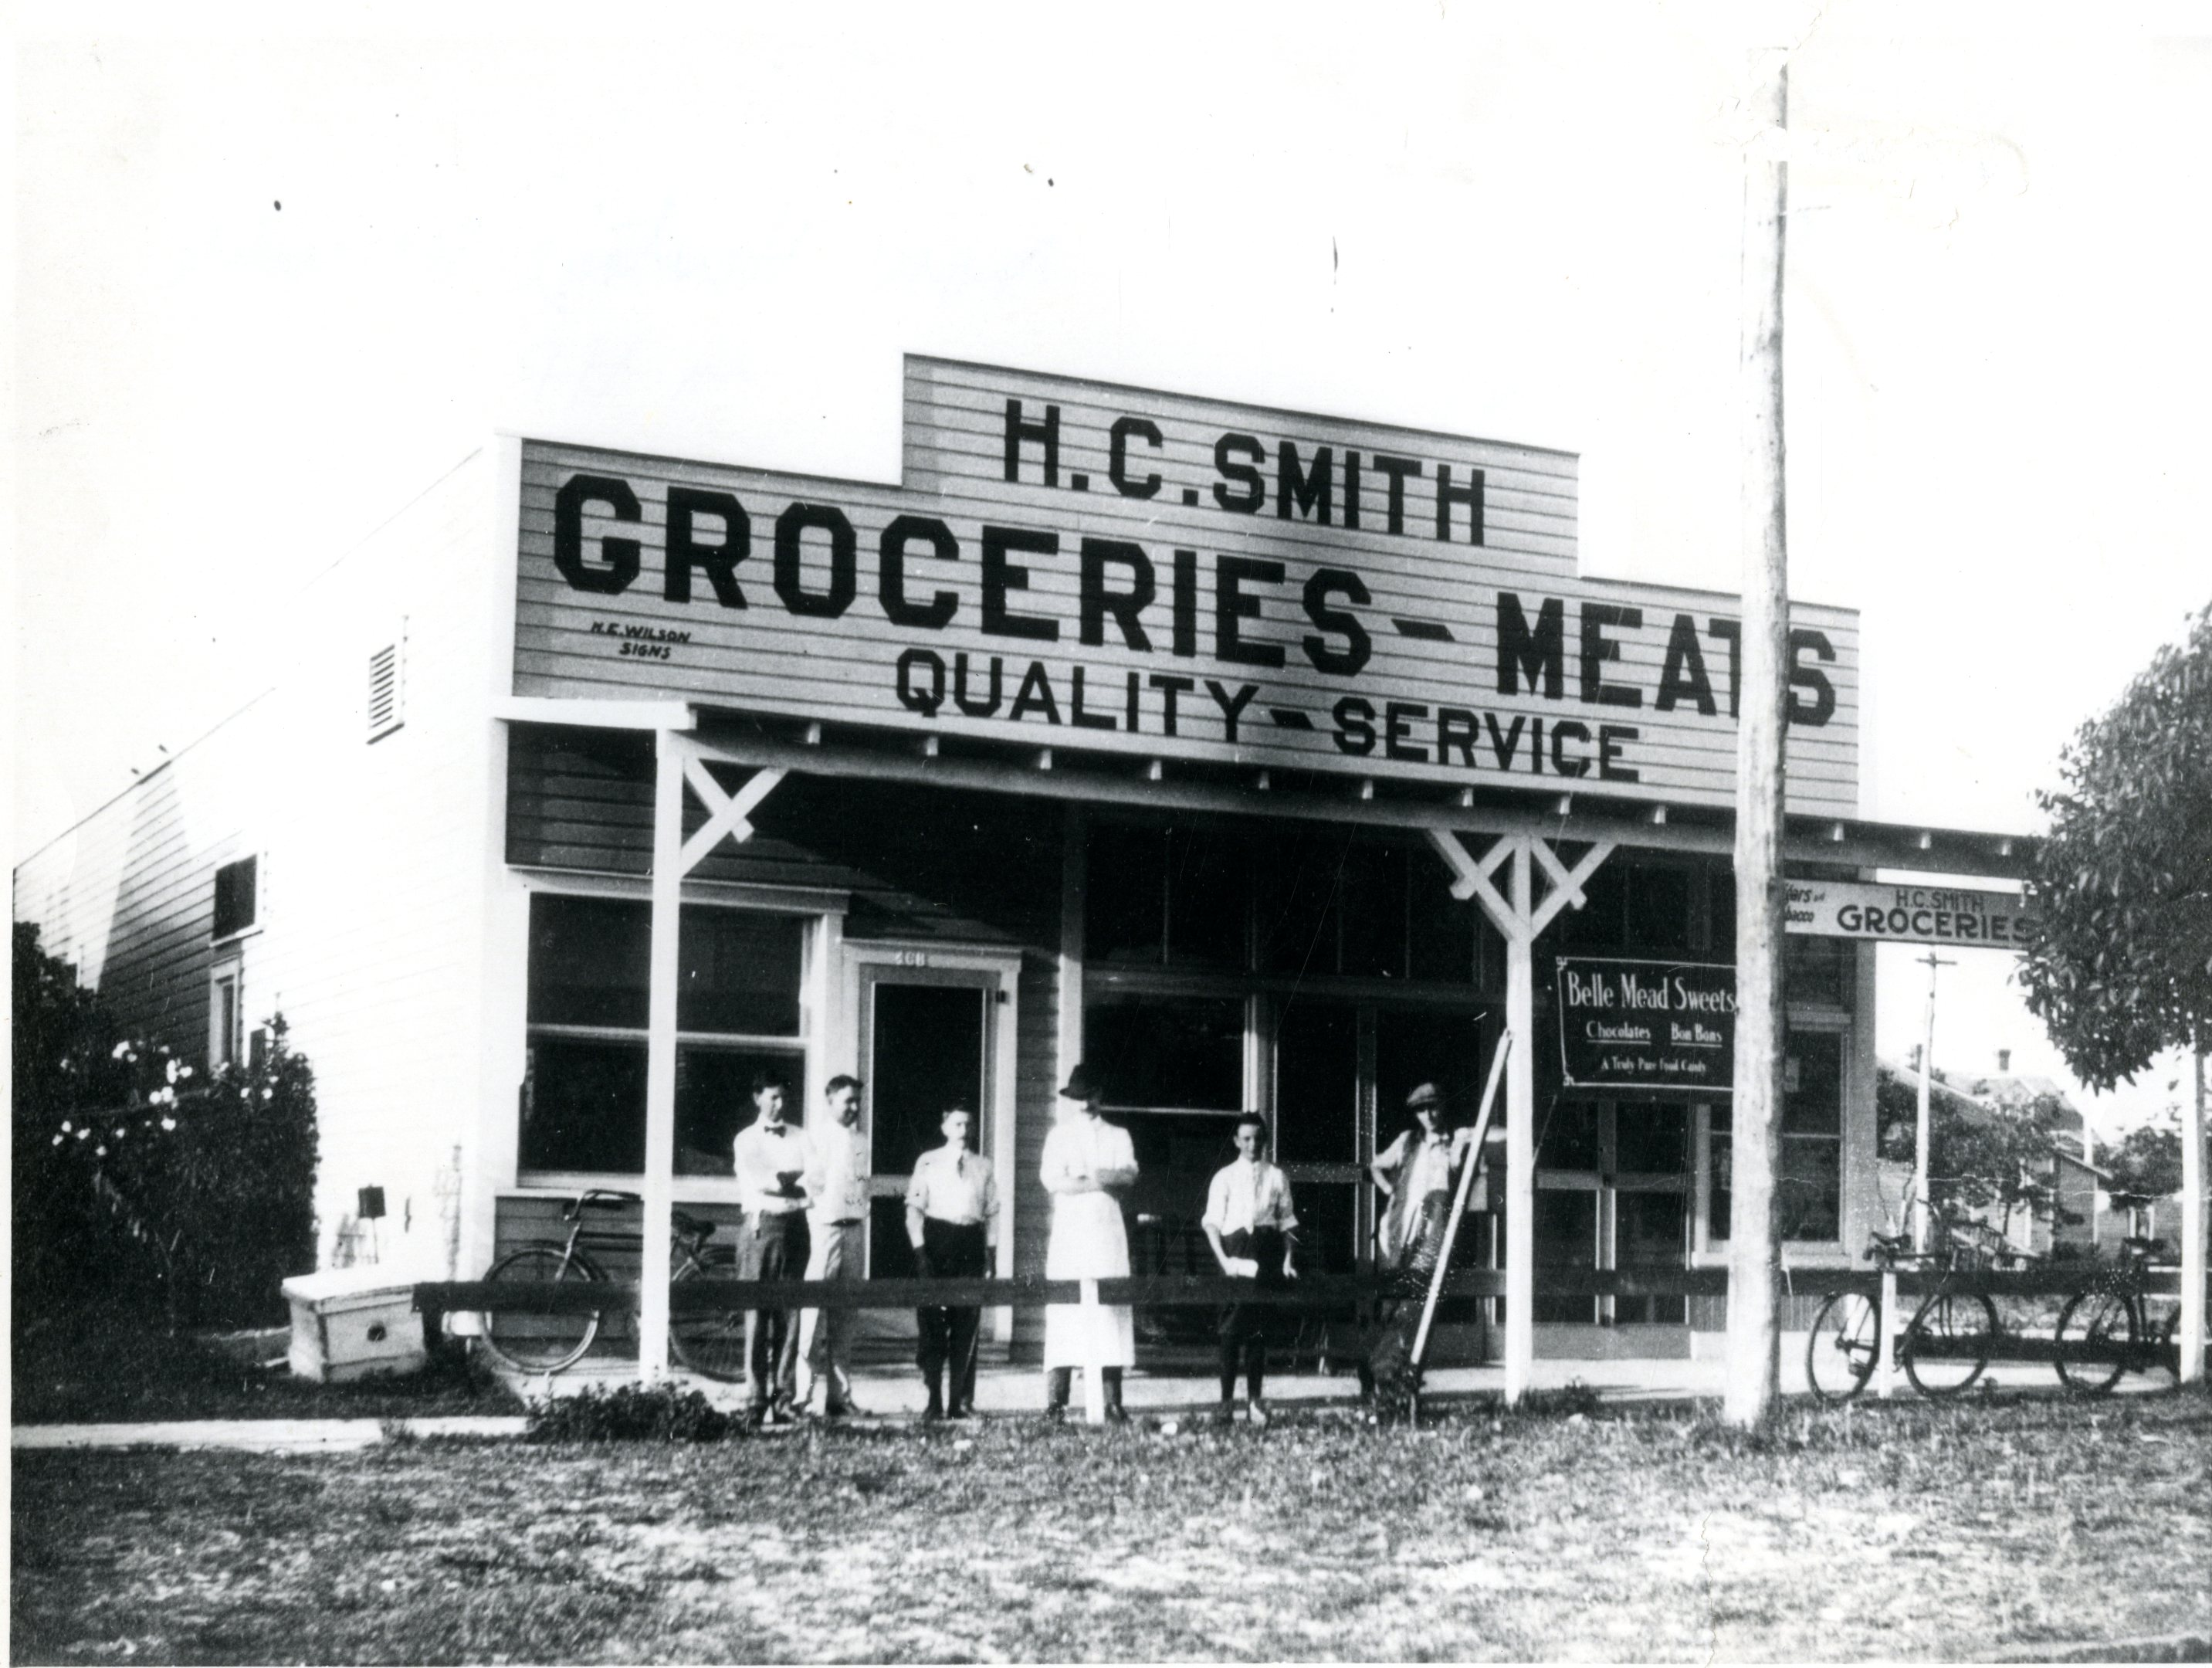 H.C. Smith Store, St. Petersburg, Florida, 1921.